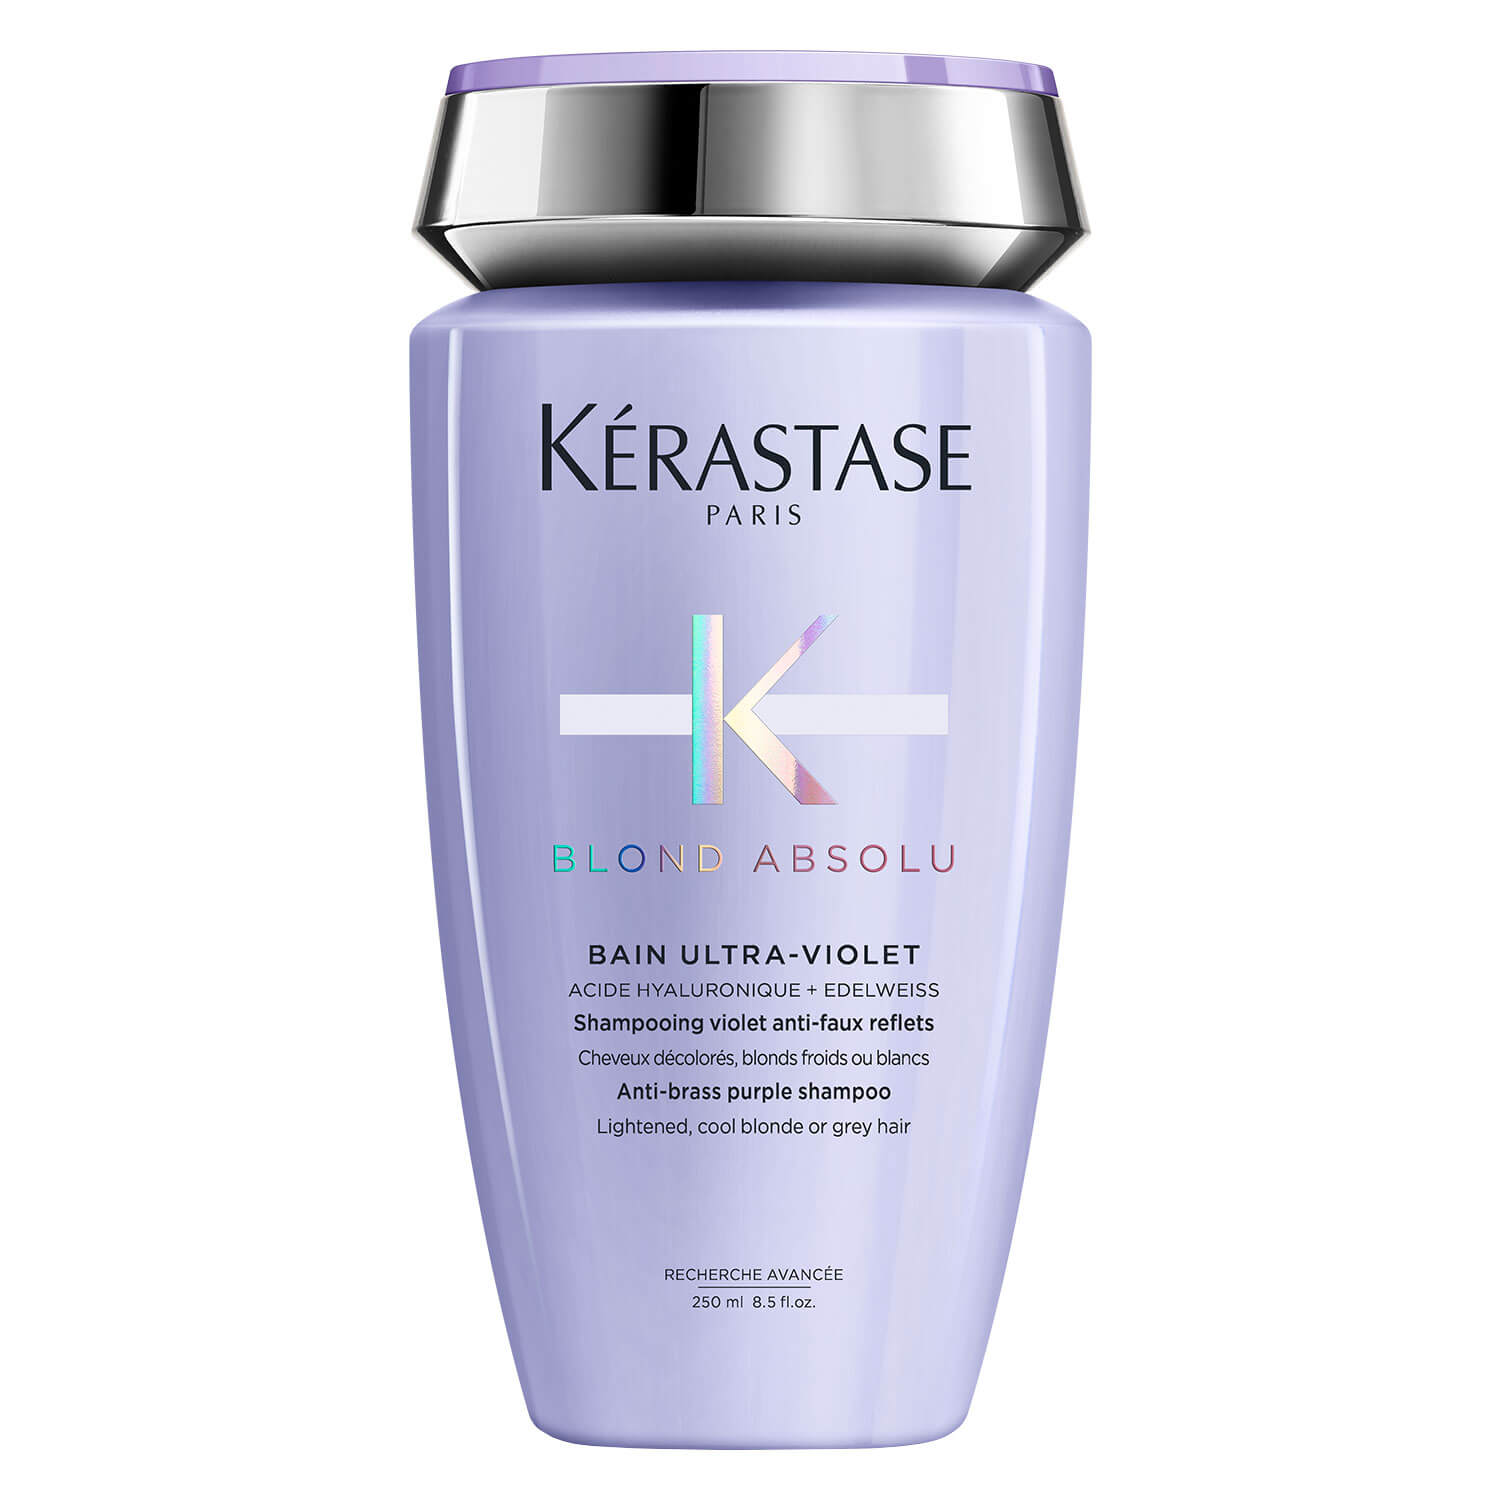 Blond Absolu - Bain Ultra-Violet